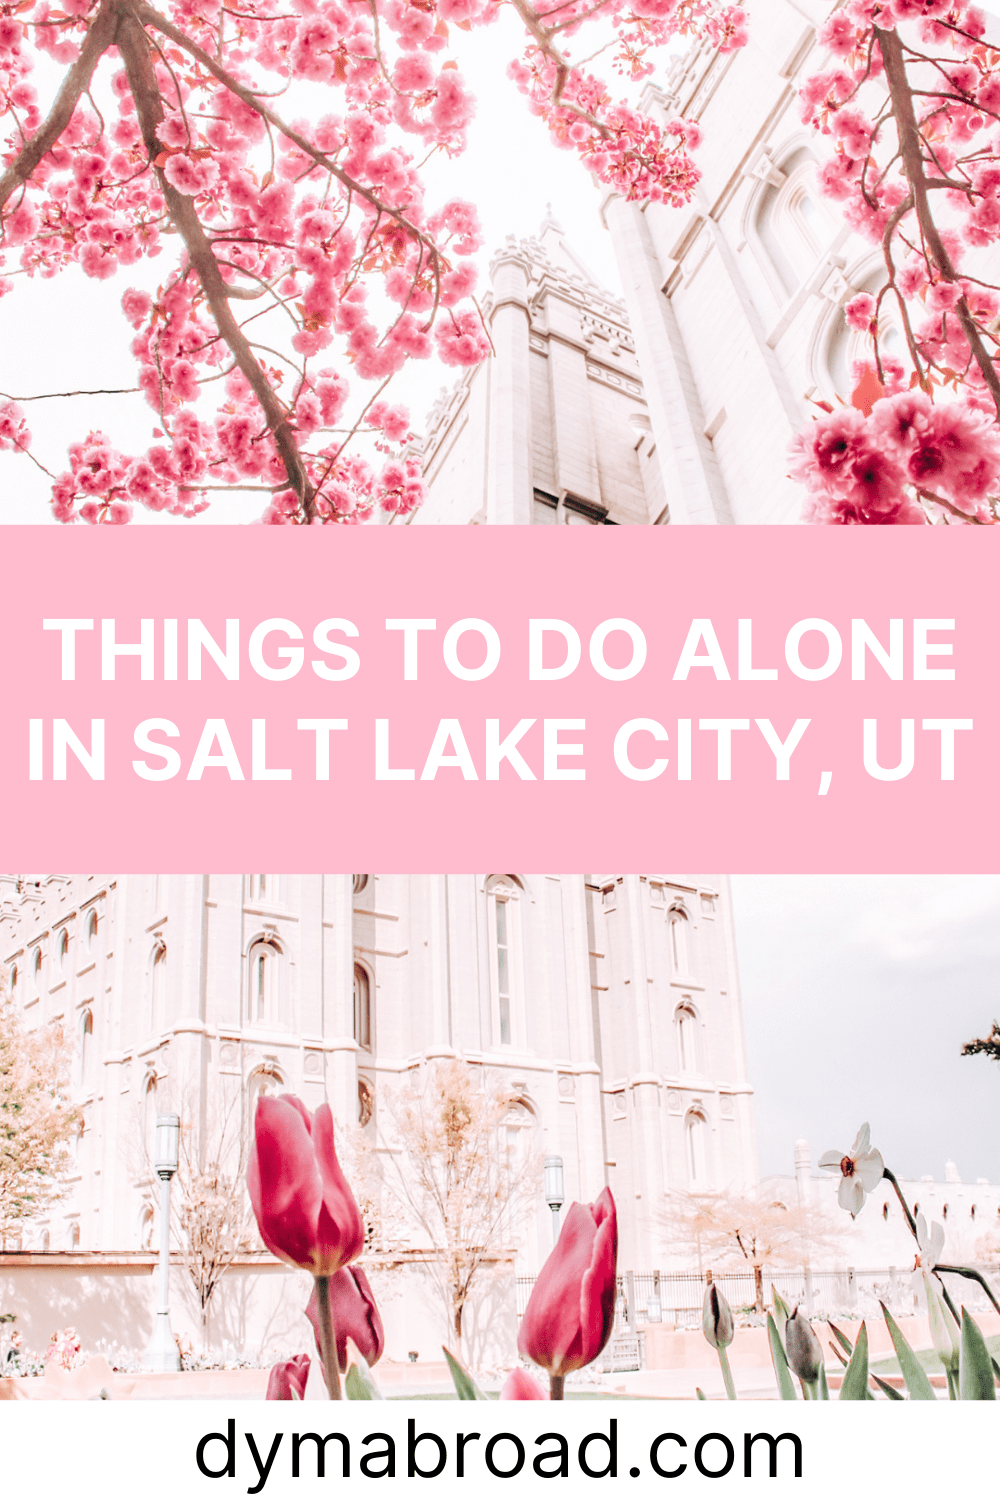 Things to do alone in Salt Lake City Pinterest image